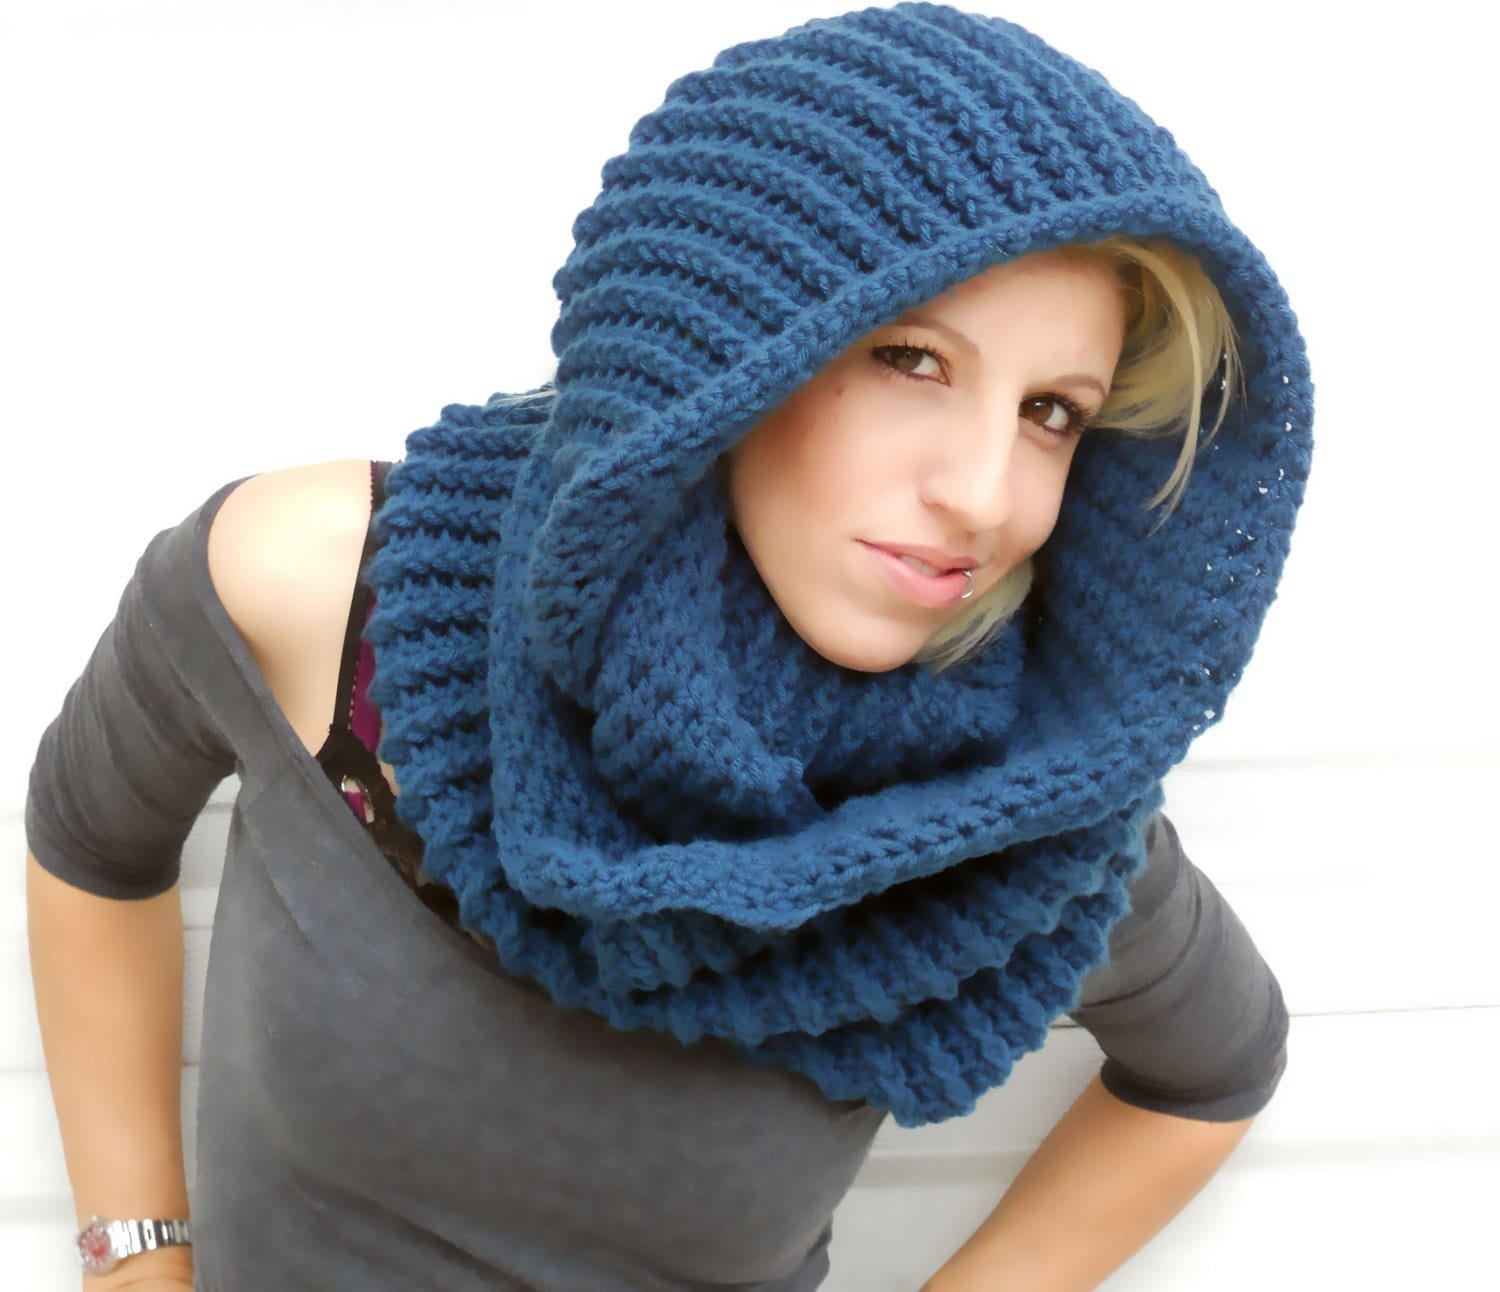 Serenity Blue Cowl Winter Cowl Crochet Cowl Infinity Scarf